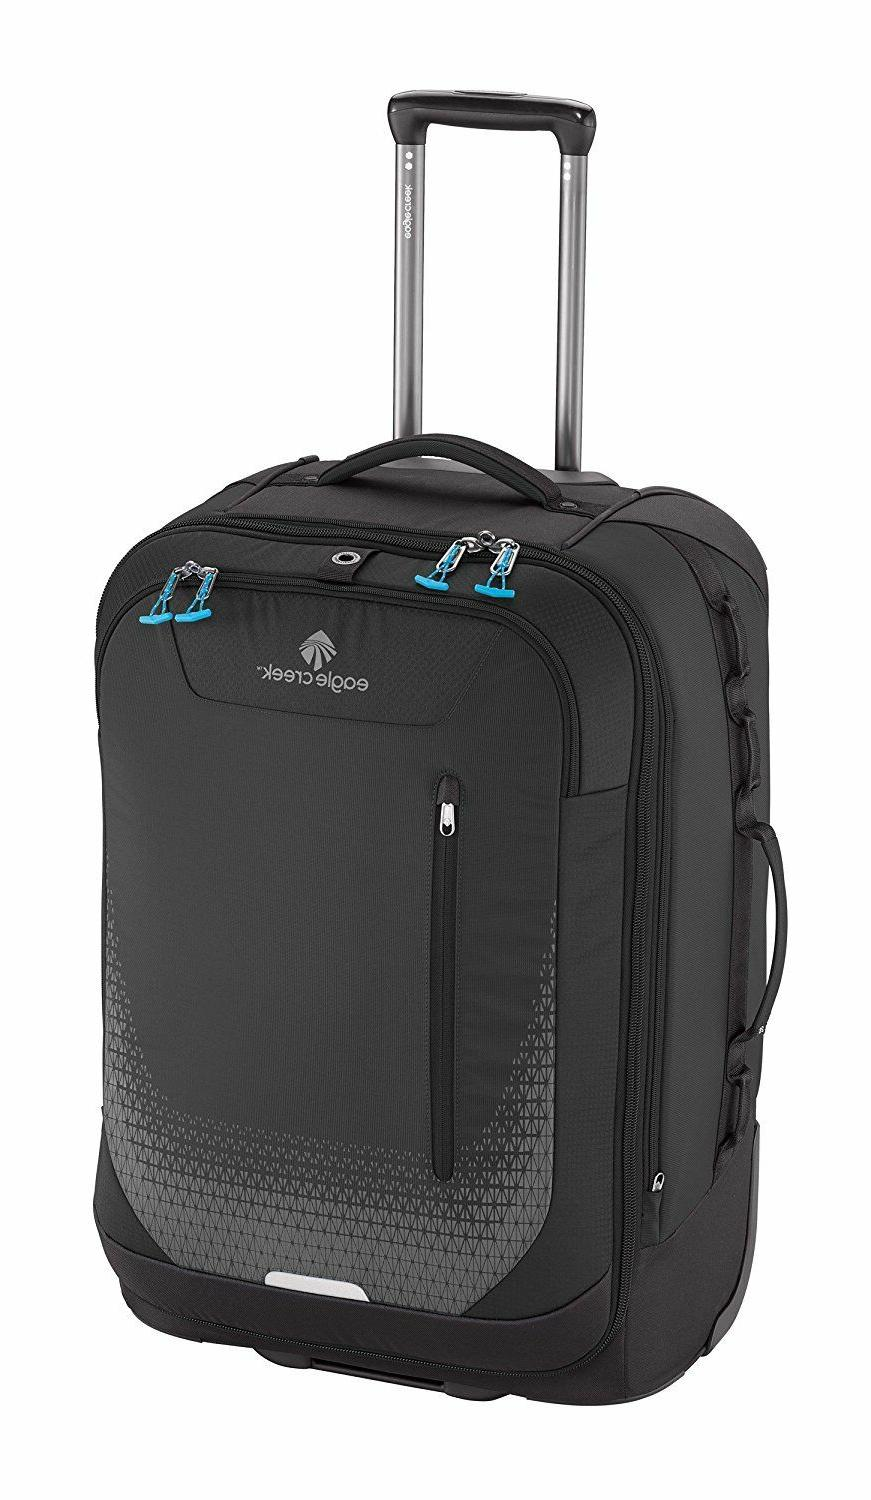 expanse carry on upright 22 lightweight luggage